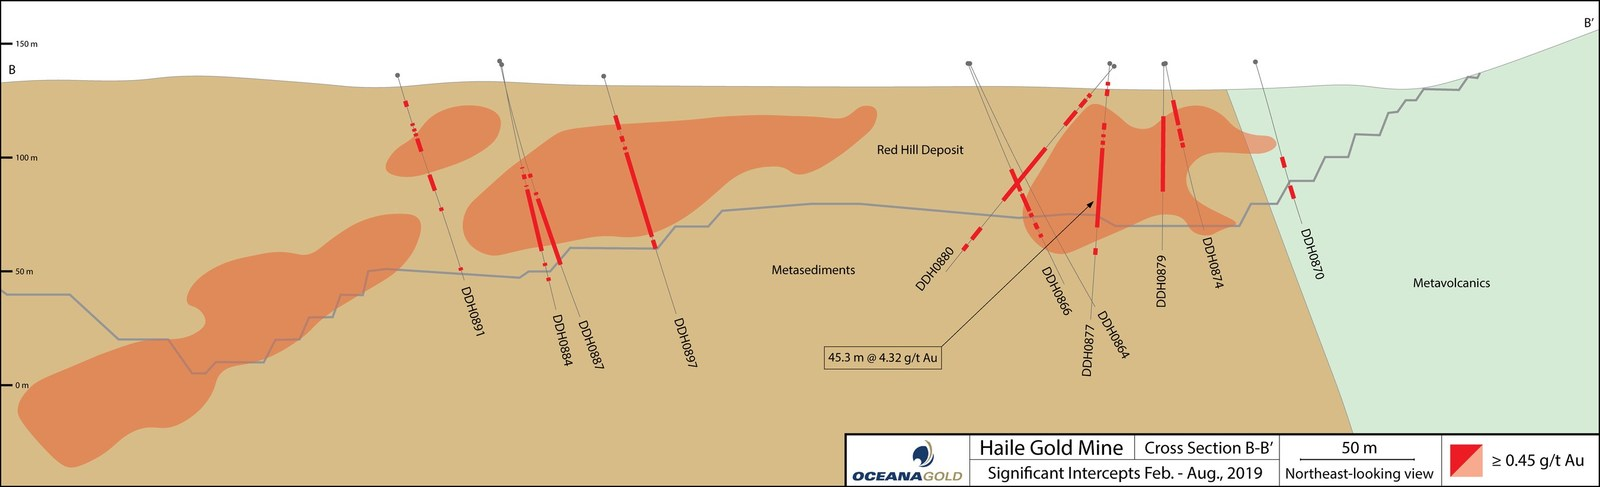 Figure 3: Red Hill cross section B-B' with new drill holes and intercepts